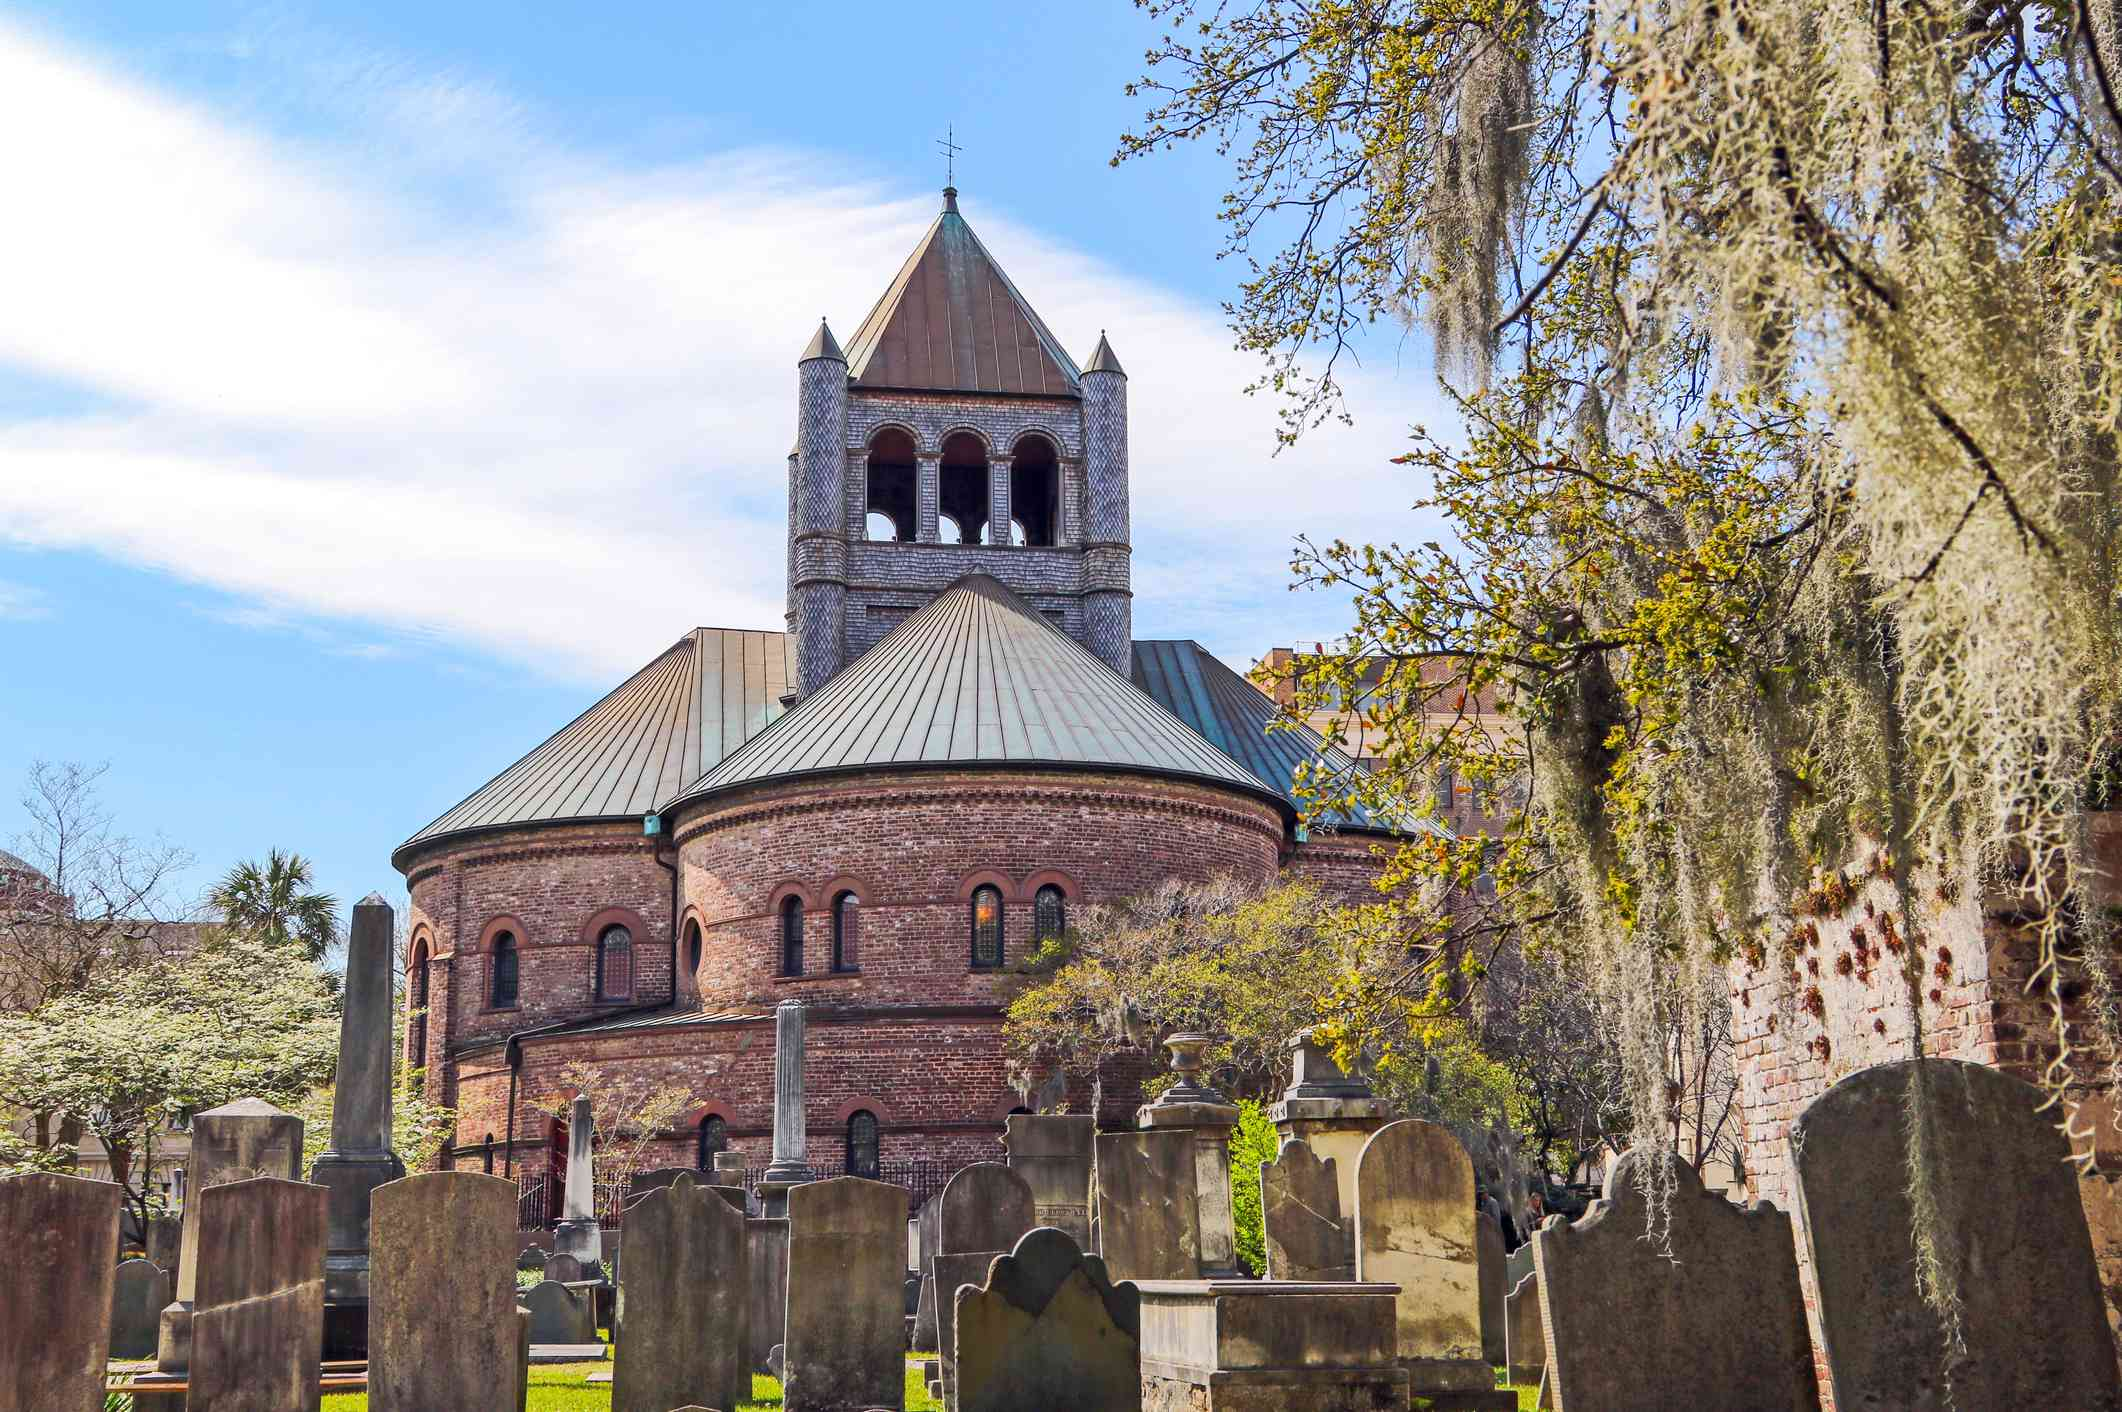 The iconic Circular Church downtown Charleston, SC and its old historic cemetery